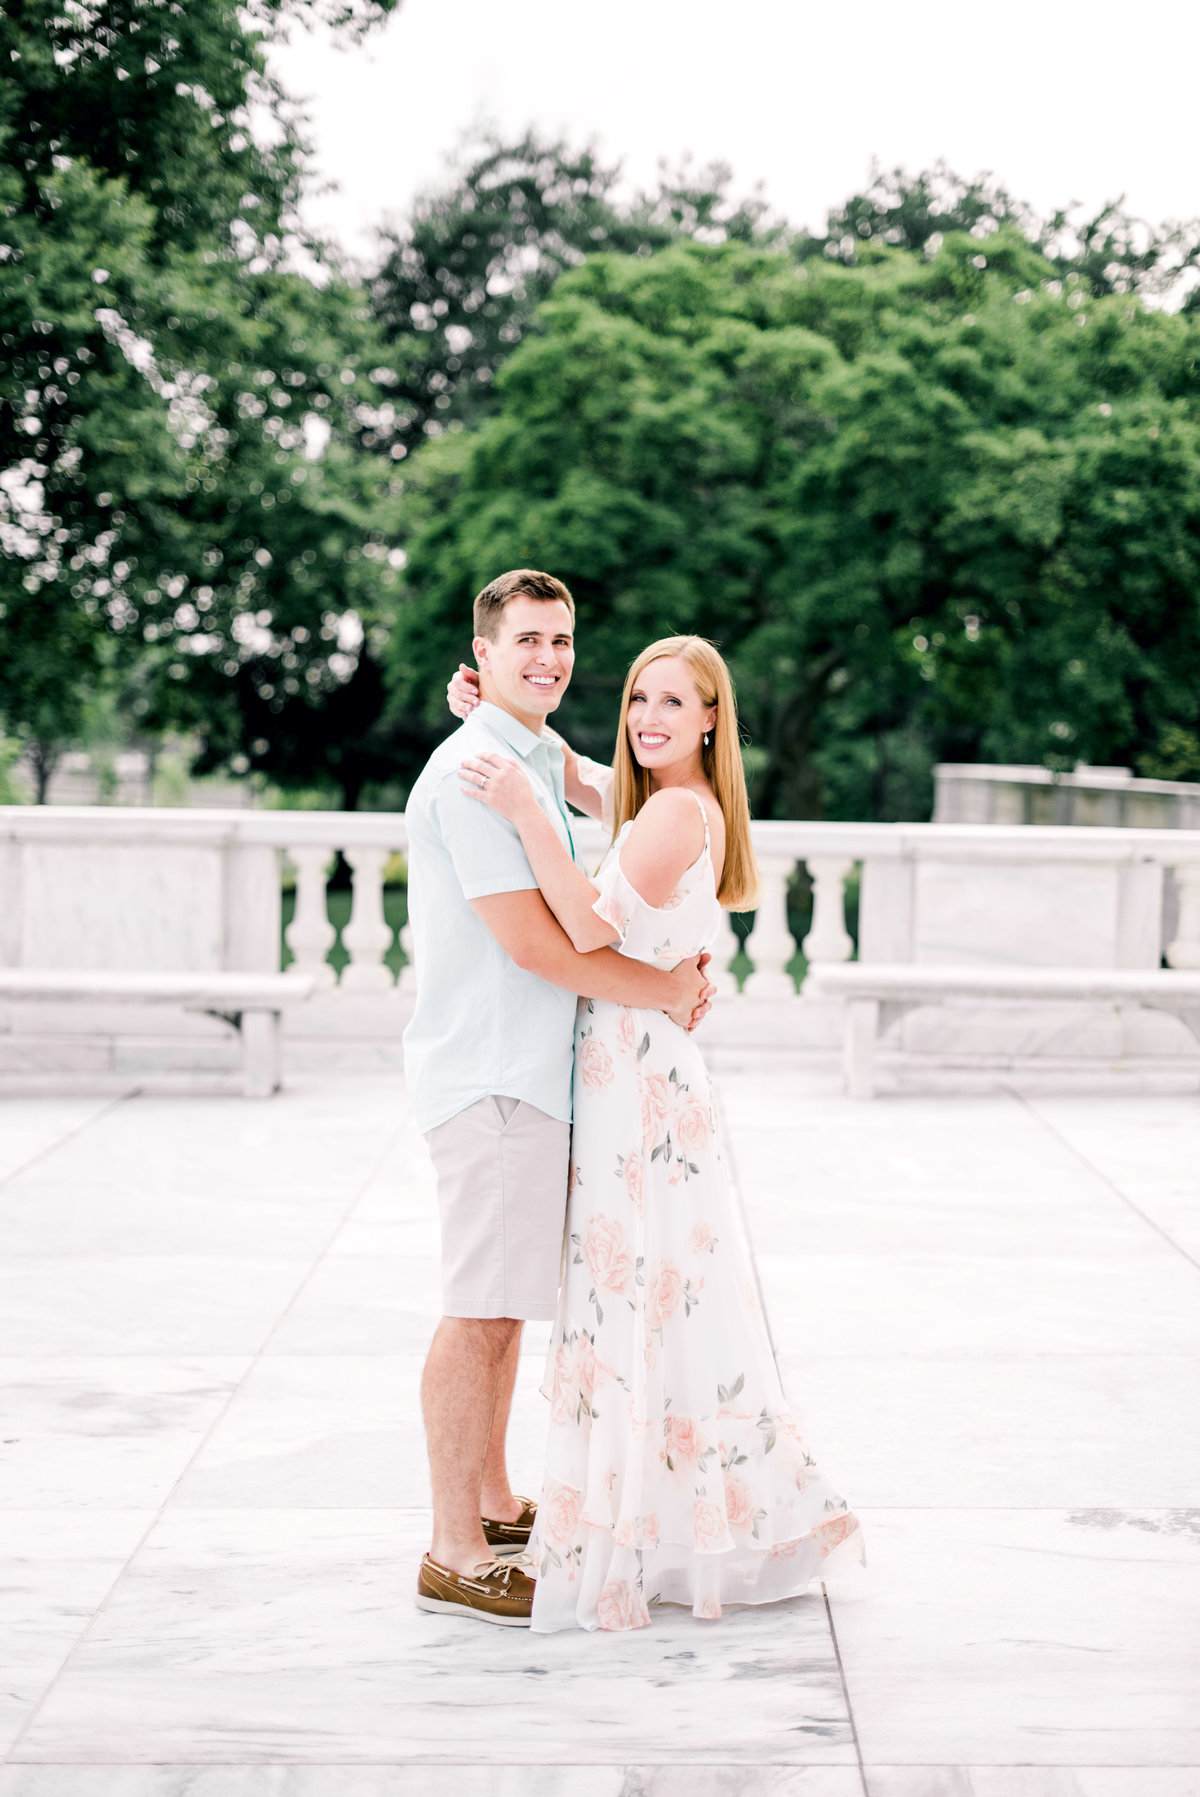 Paige&Joey_Engaged-4